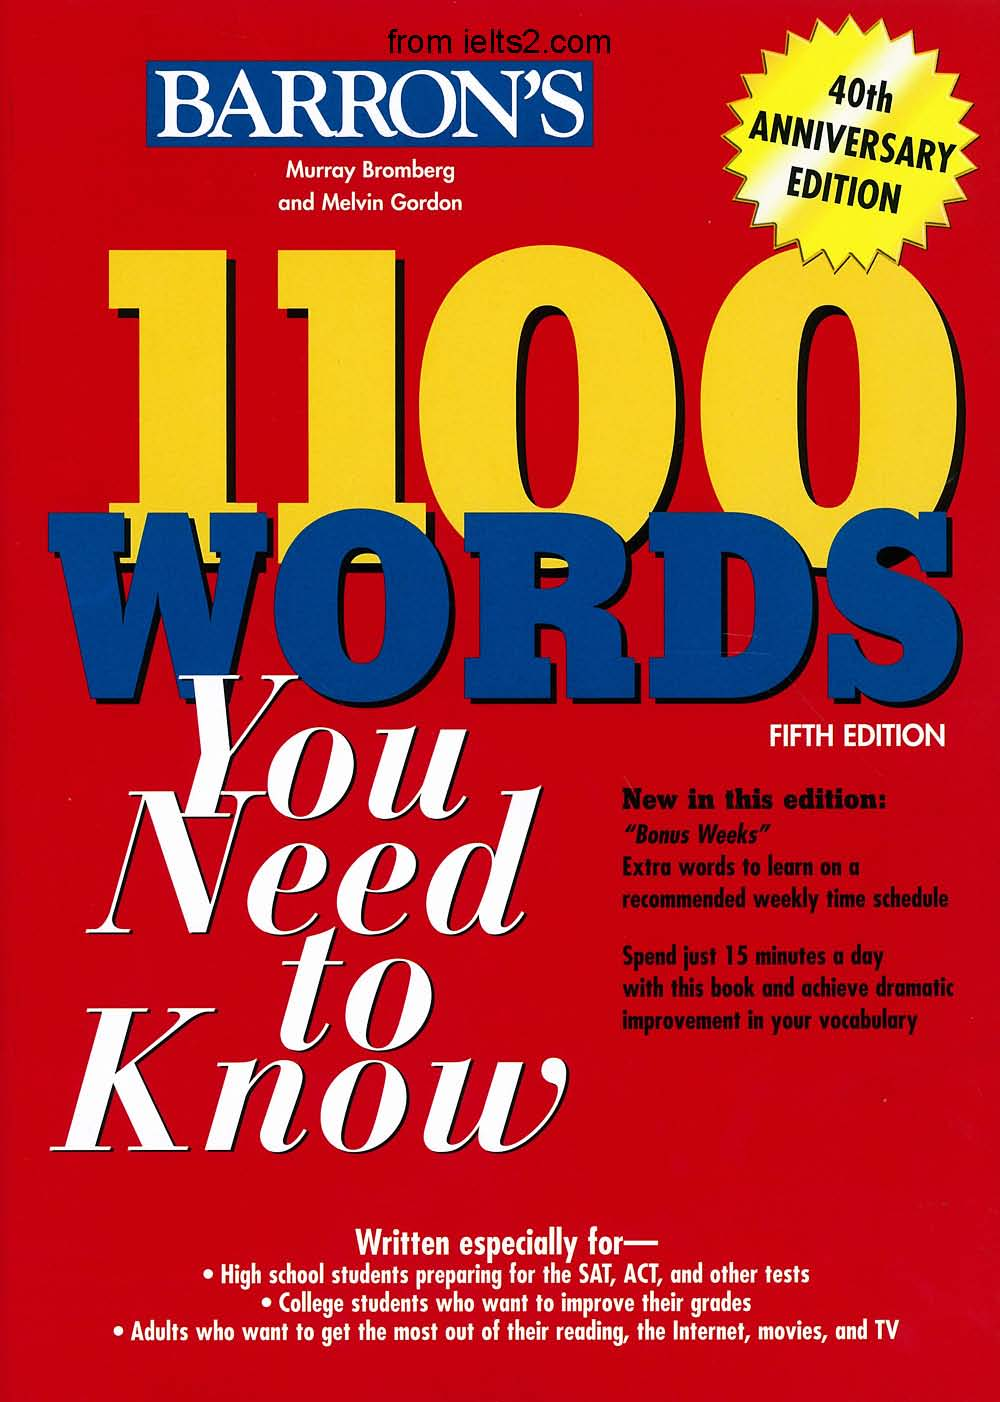 Barrons 1100 Words You Need to Know 5th--from ielts2.com